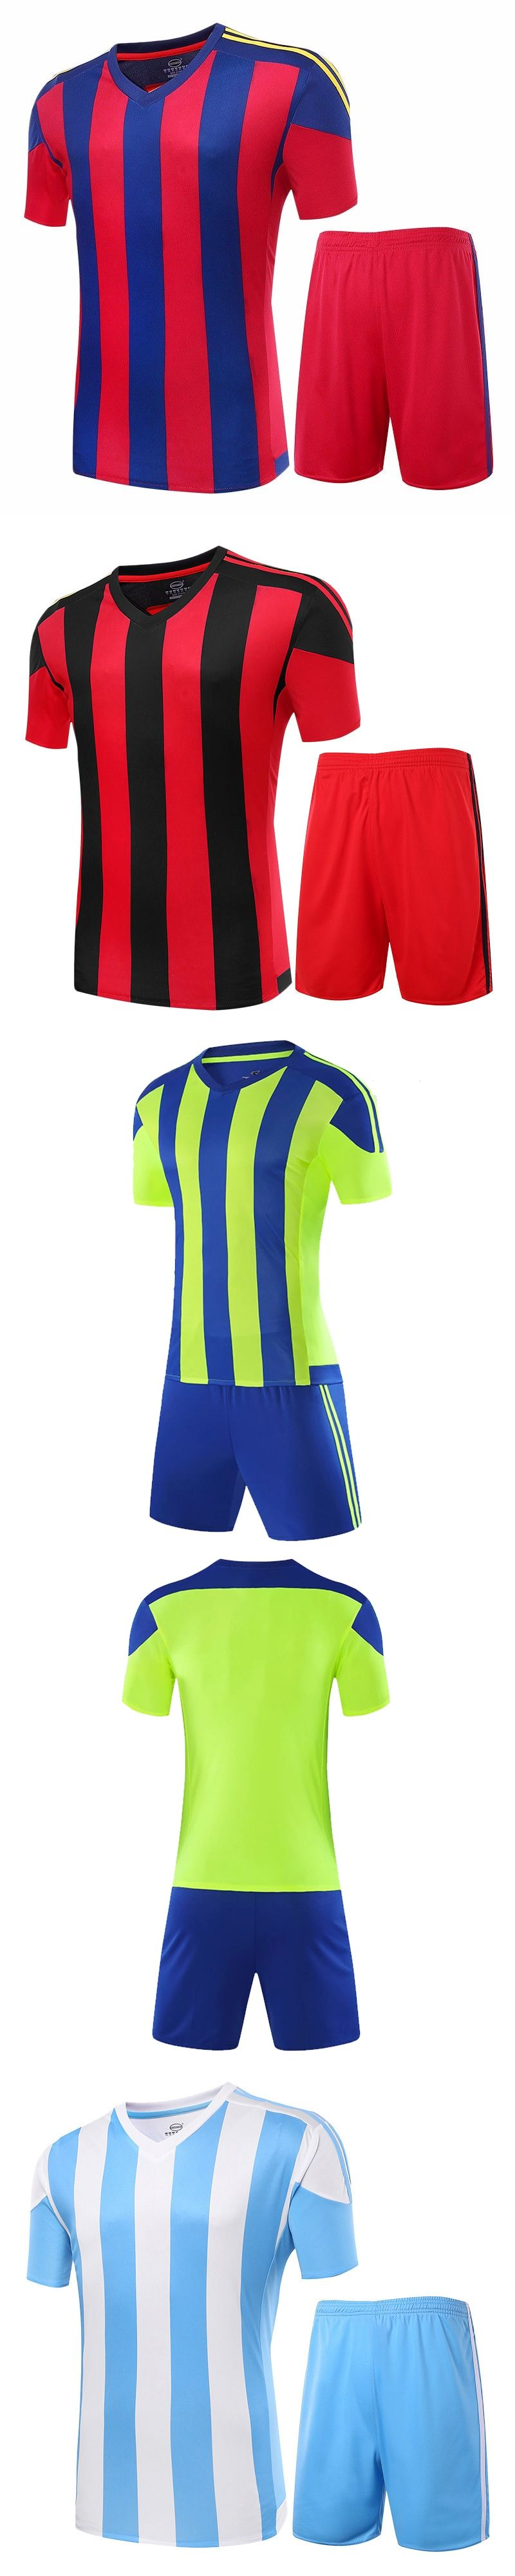 2016 17 Men s Soccer Jerseys Striped Blank Training Set Uniform Plain  Football Suits Can Customize Logo d6ee31643